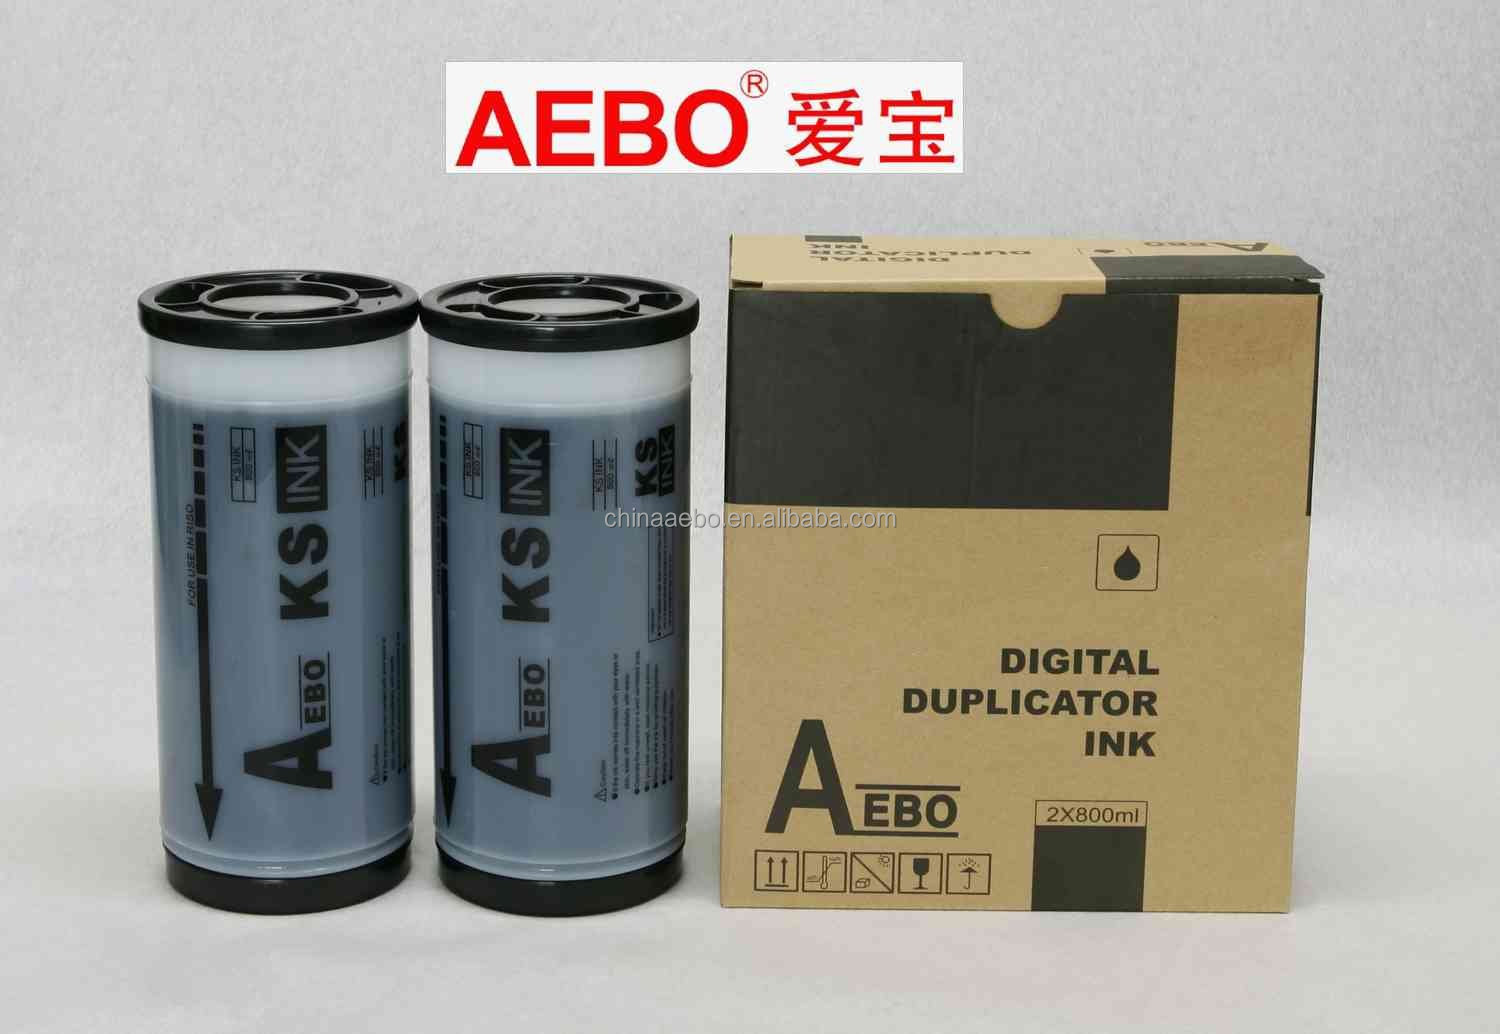 Digital duplicator Ink and Master GR/RZ/CZ (1000ml) compatibel for GR3700/3710/3750/371/373/375/370